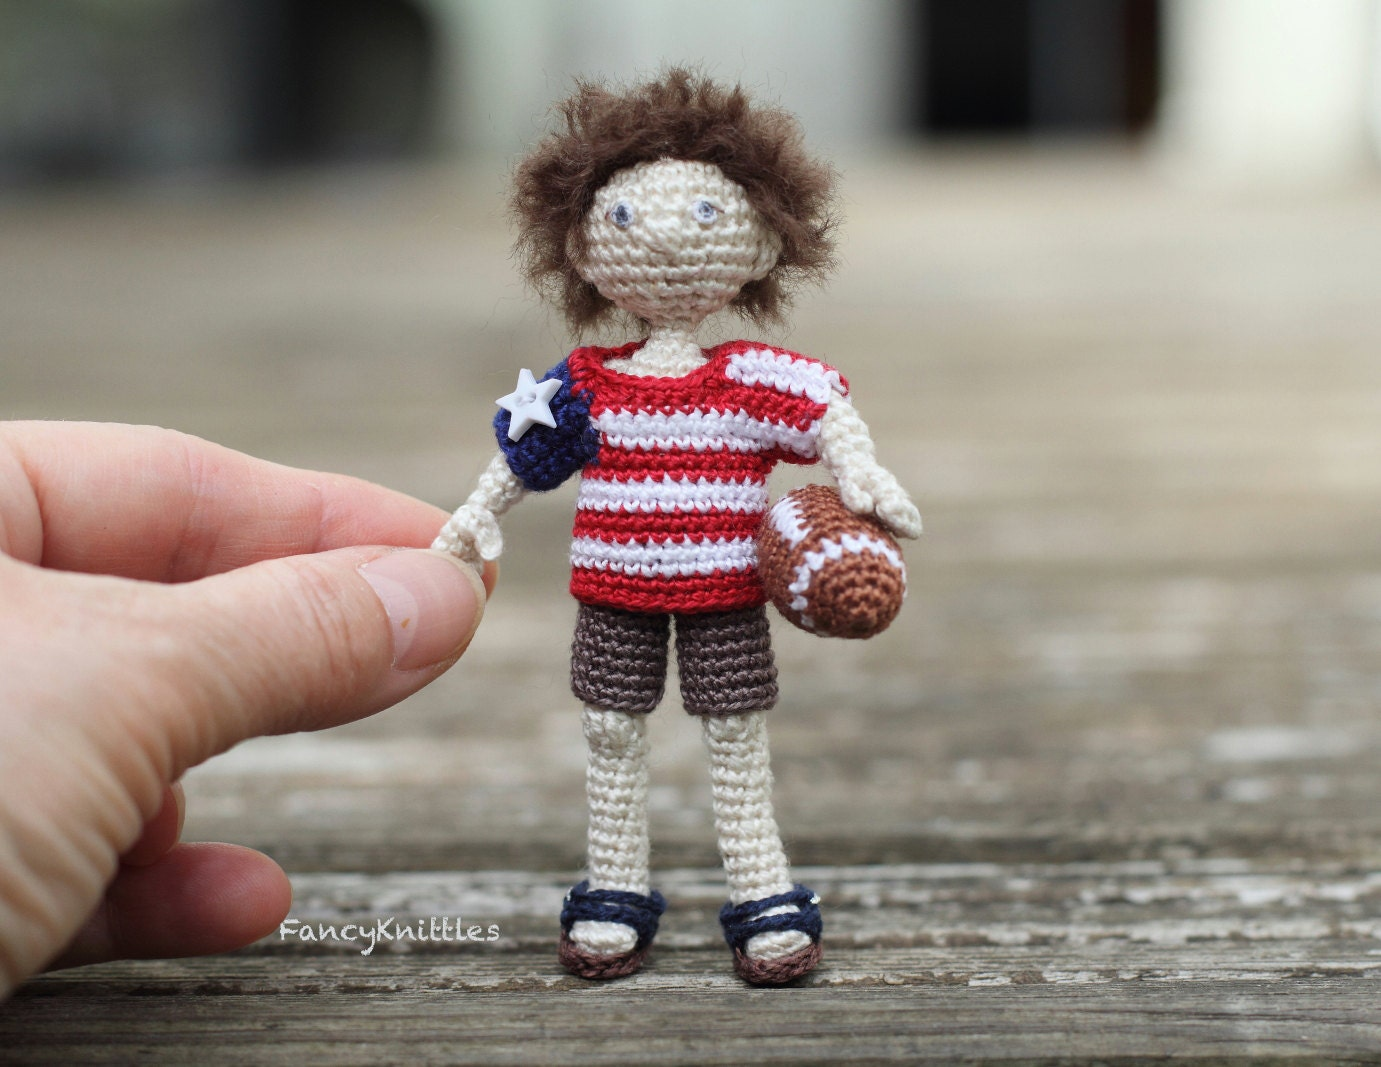 American boy doll USA flag tshirt crochet art doll miniature fancy collectable toy July 4th Independence day gift interior doll amigurumi